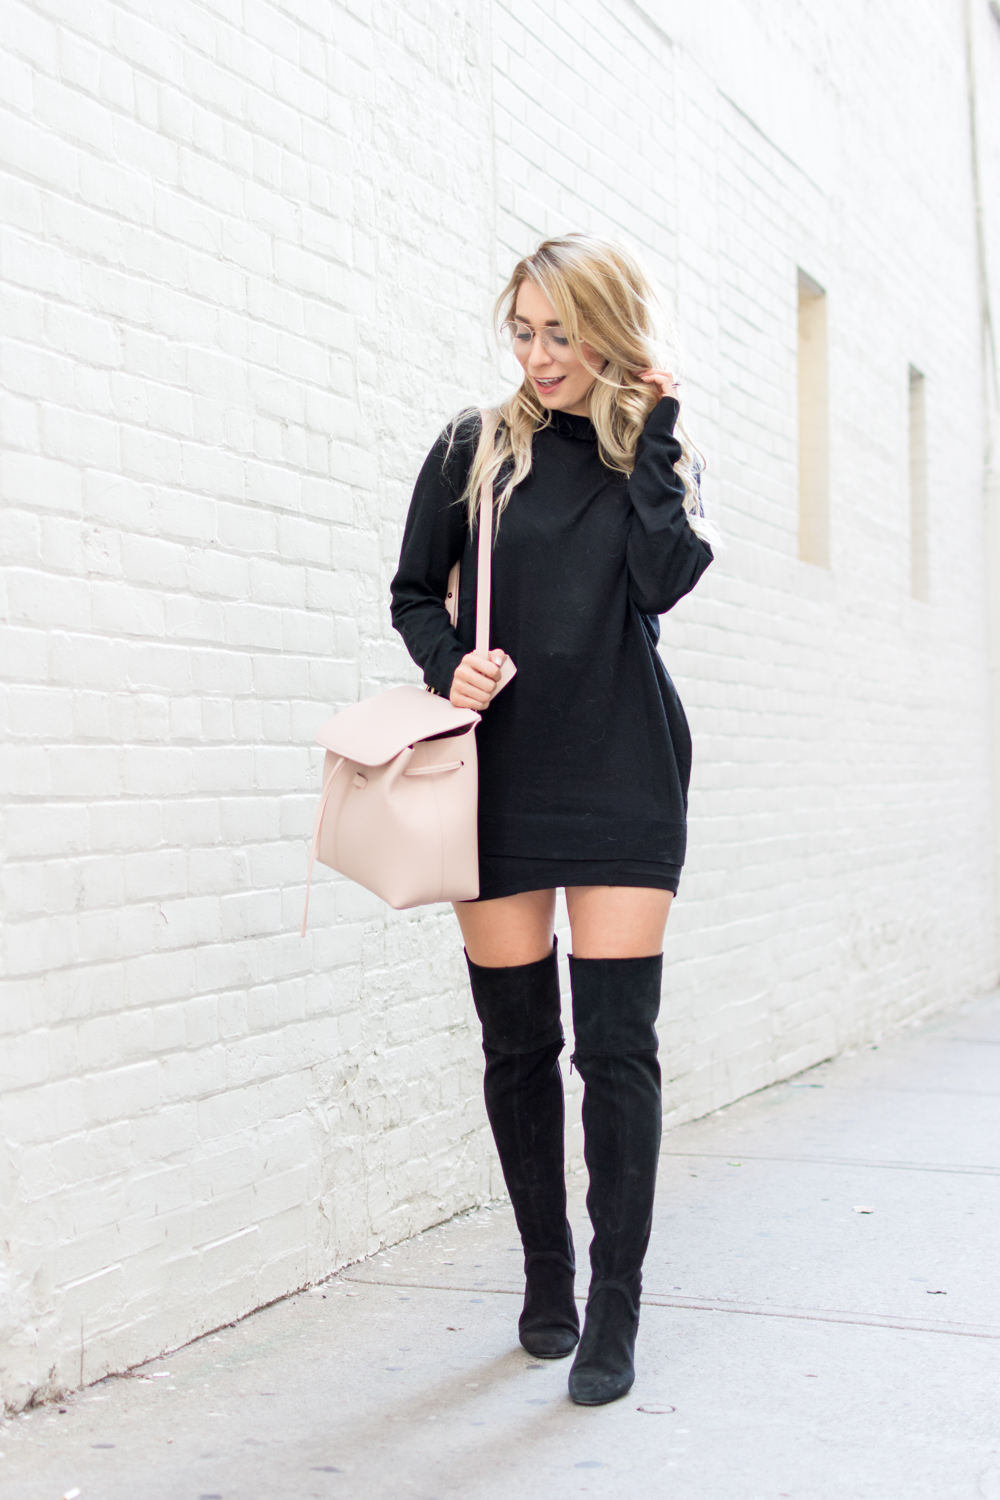 OOTD - Over The Knee Boots | La Petite Noob | A Toronto-Based Fashion and Lifestyle Blog.